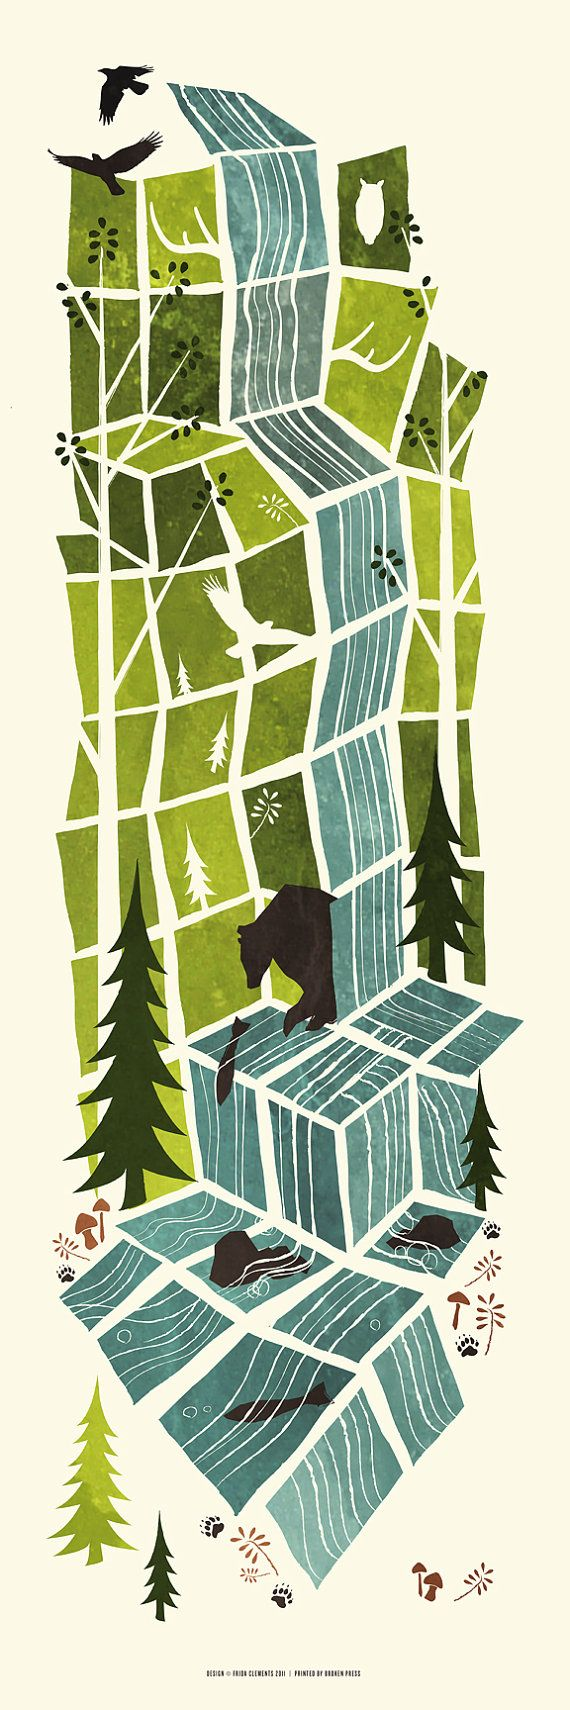 Bear in the Woods - illustration by Frida Clemens. (I created an illustration board finally just to add this. It's not 'art' and not 'design' but a perfect mix.)